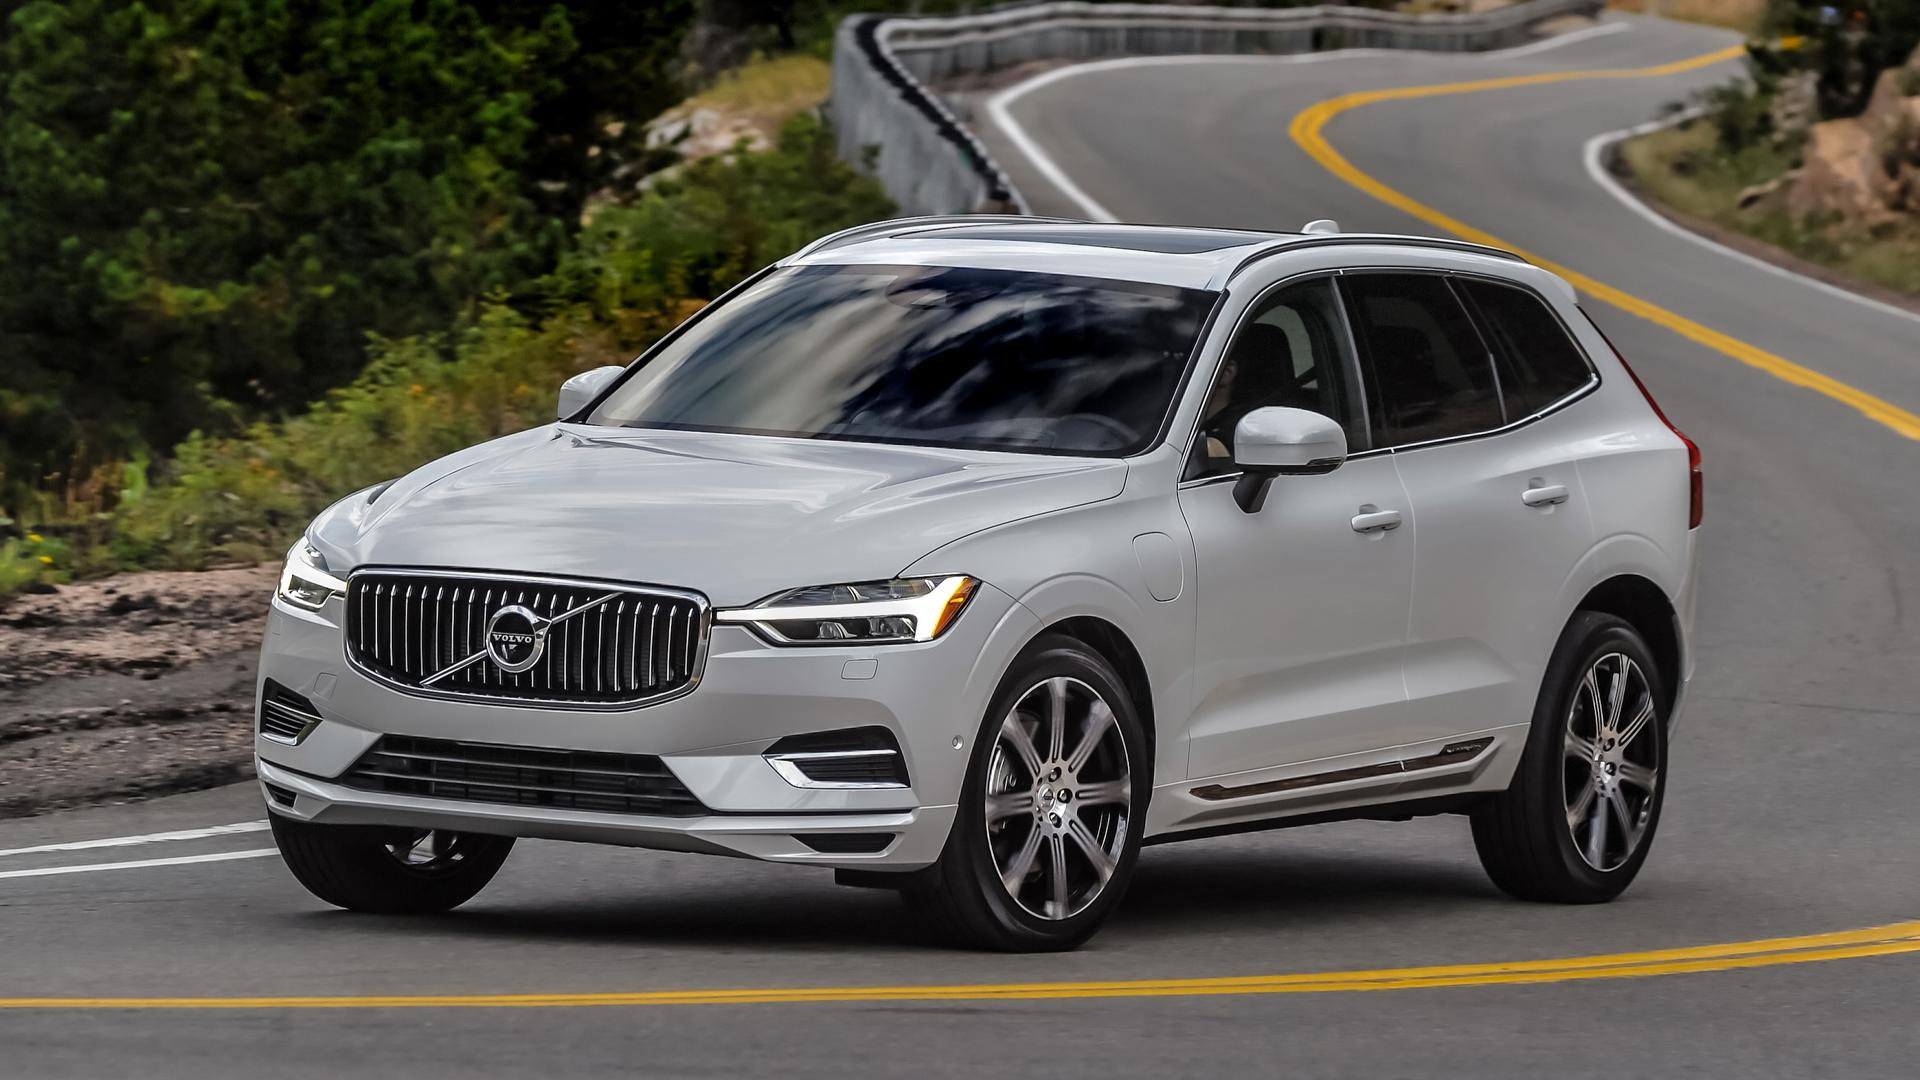 Volvo XC60 Look, Price, Rivals & Feature